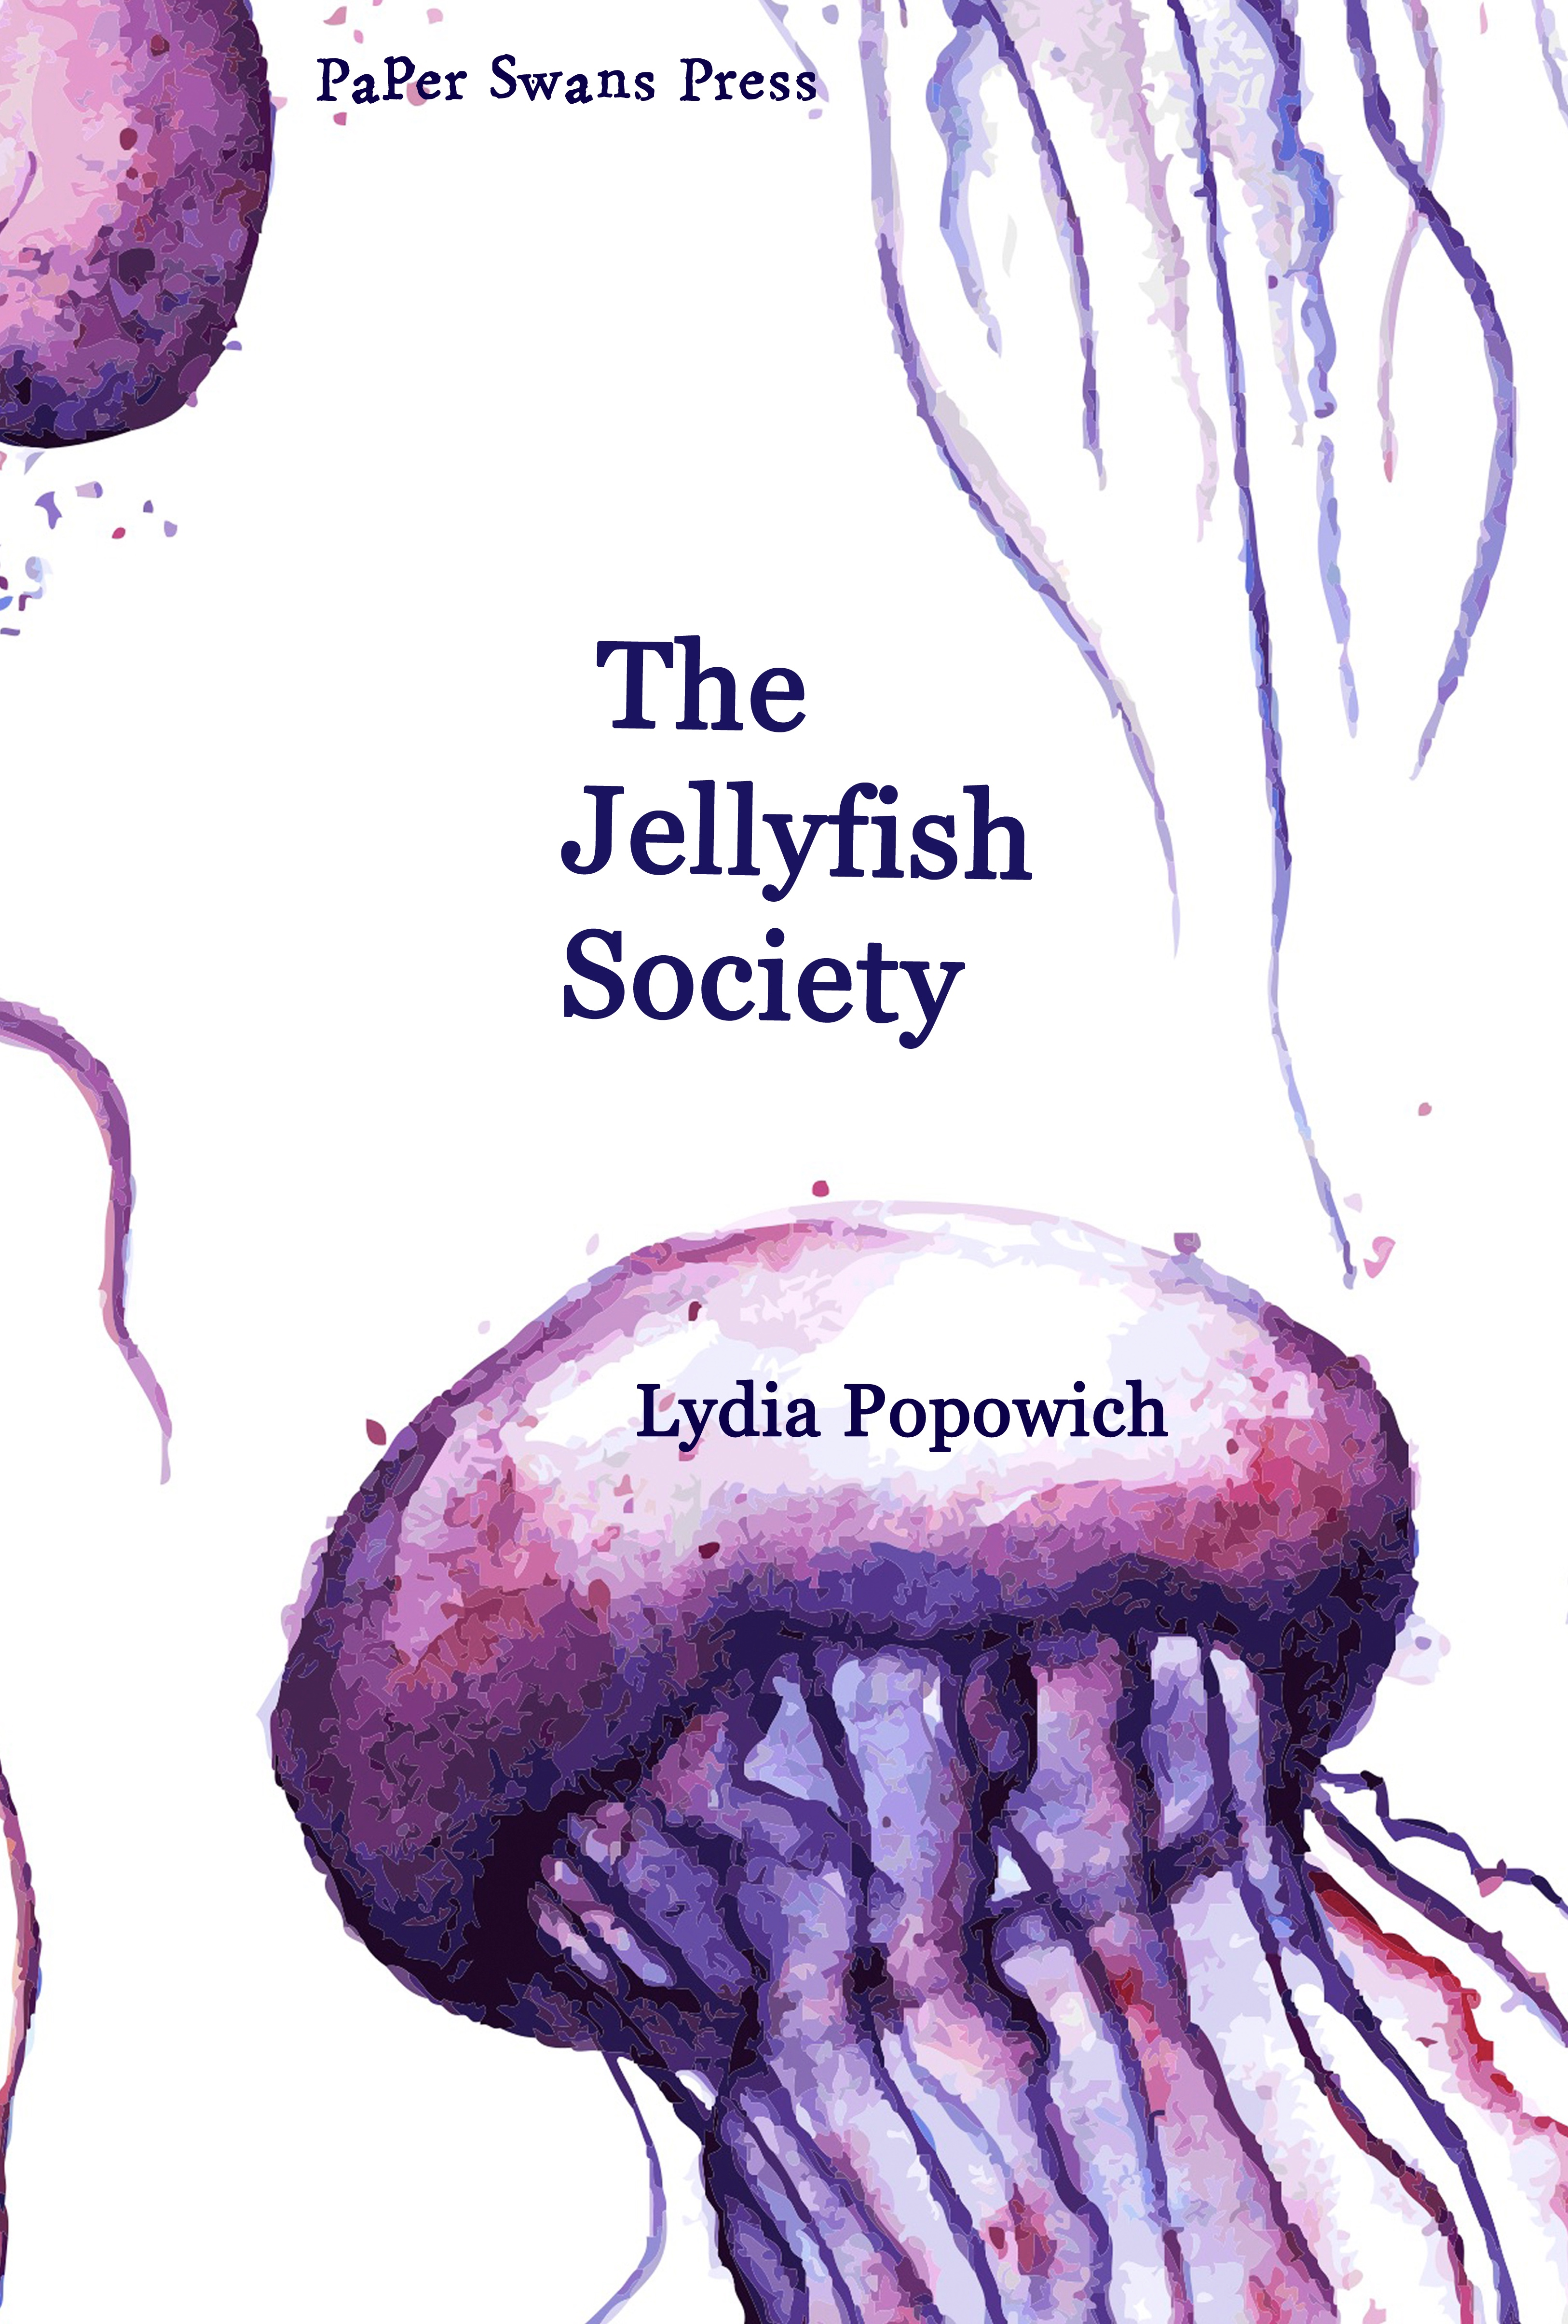 The Jellyfish Society - Paper Swans Press